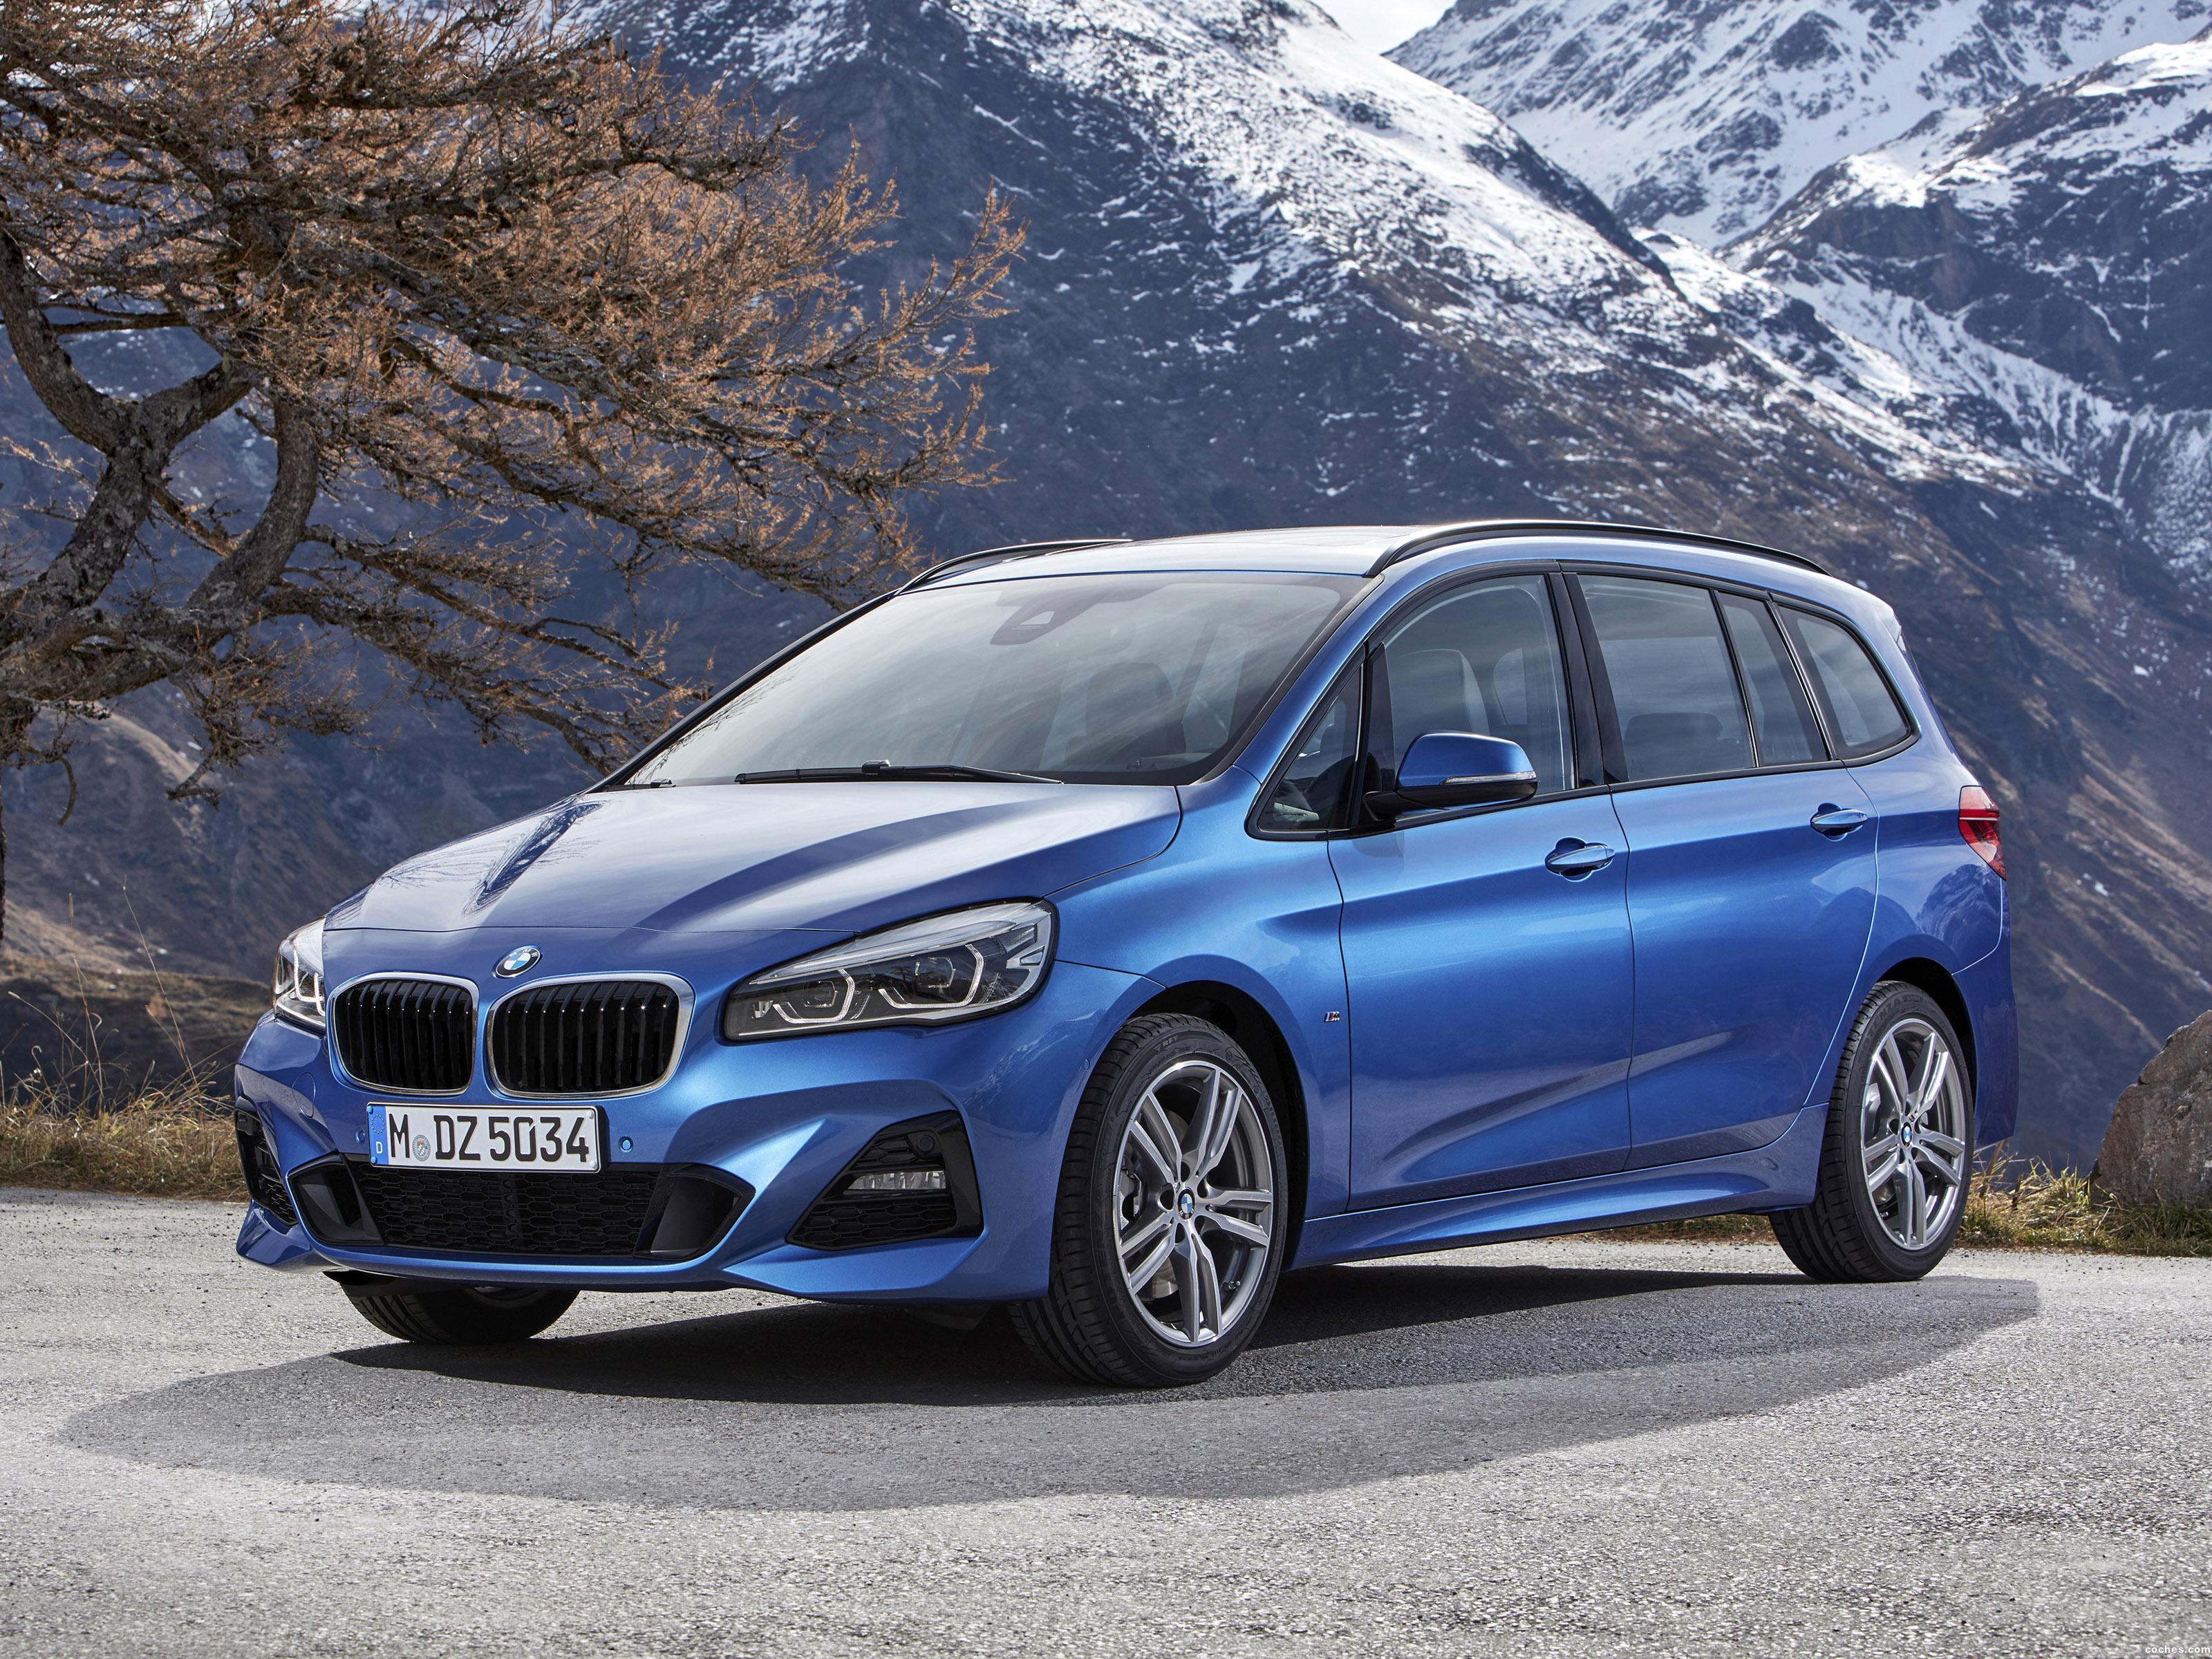 BMW 2 Series Gran Tourer (F46) exterior big